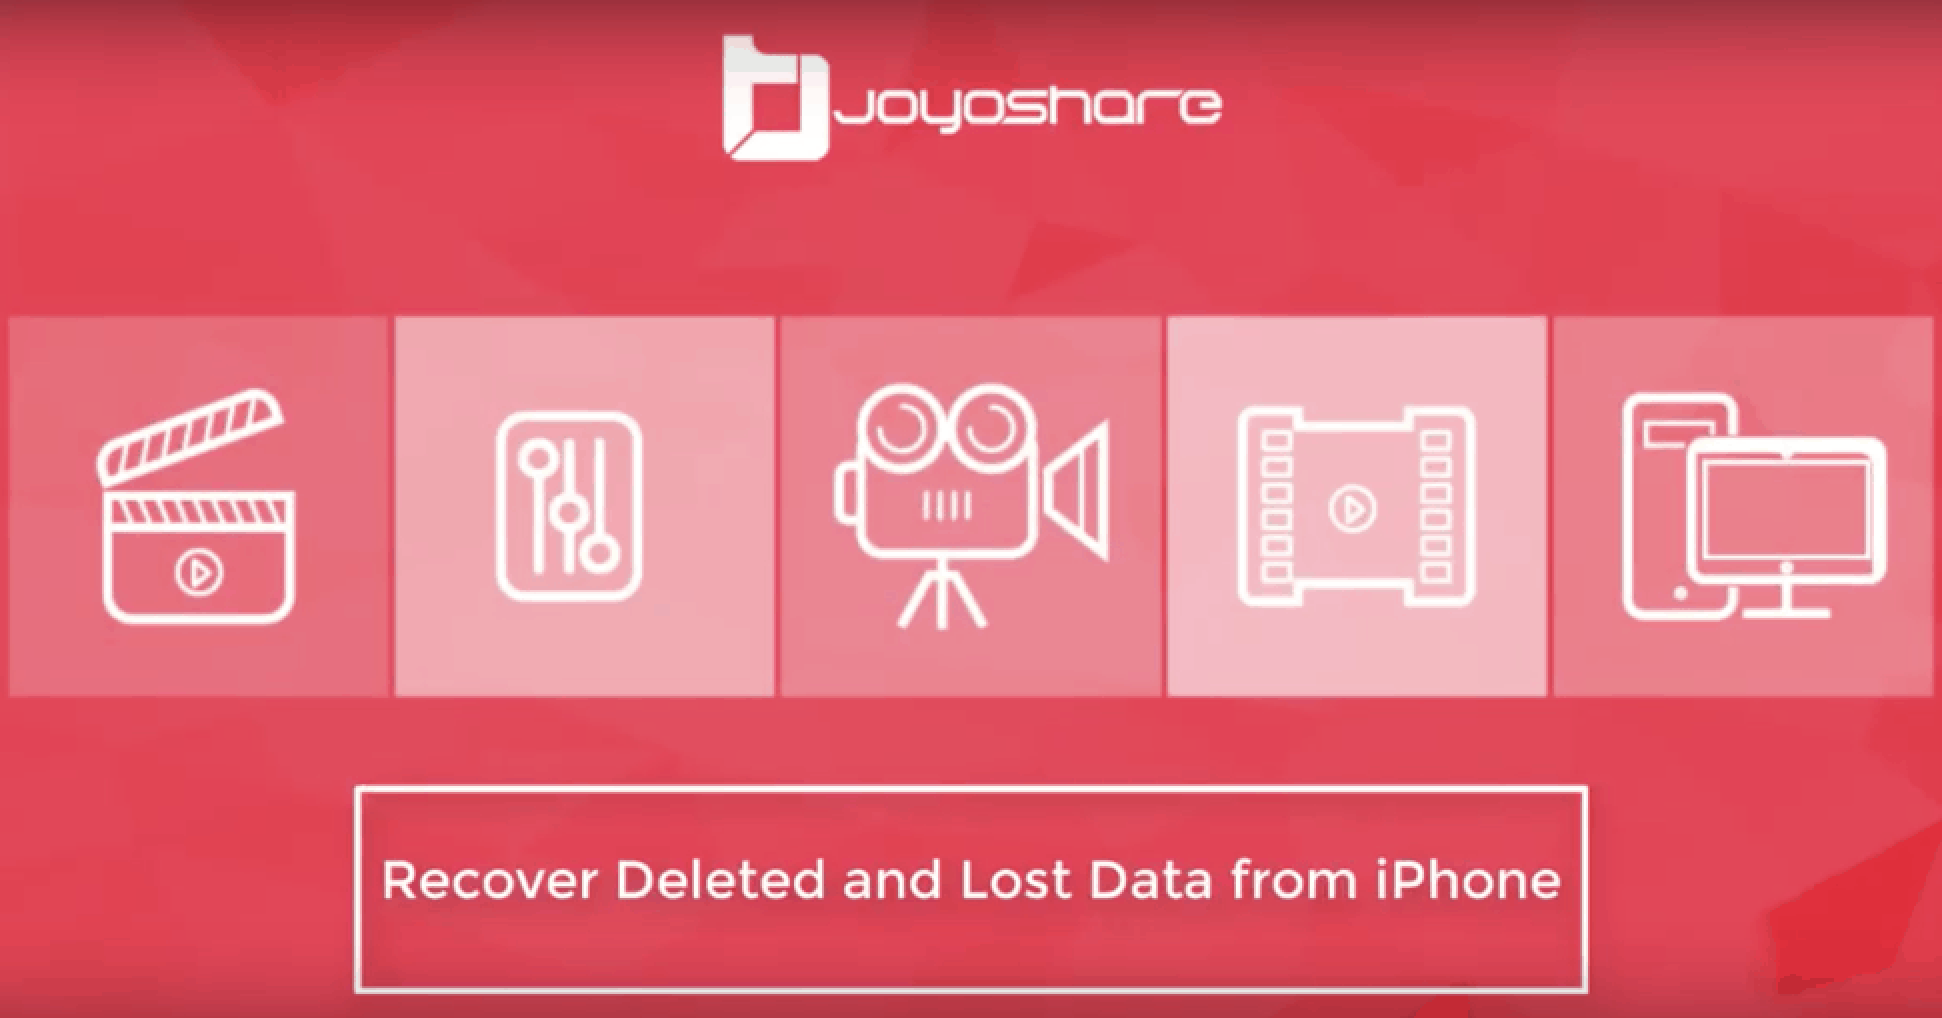 Joyoshare iPhone Data Recovery - A Top Notch Recovery Software for iOS